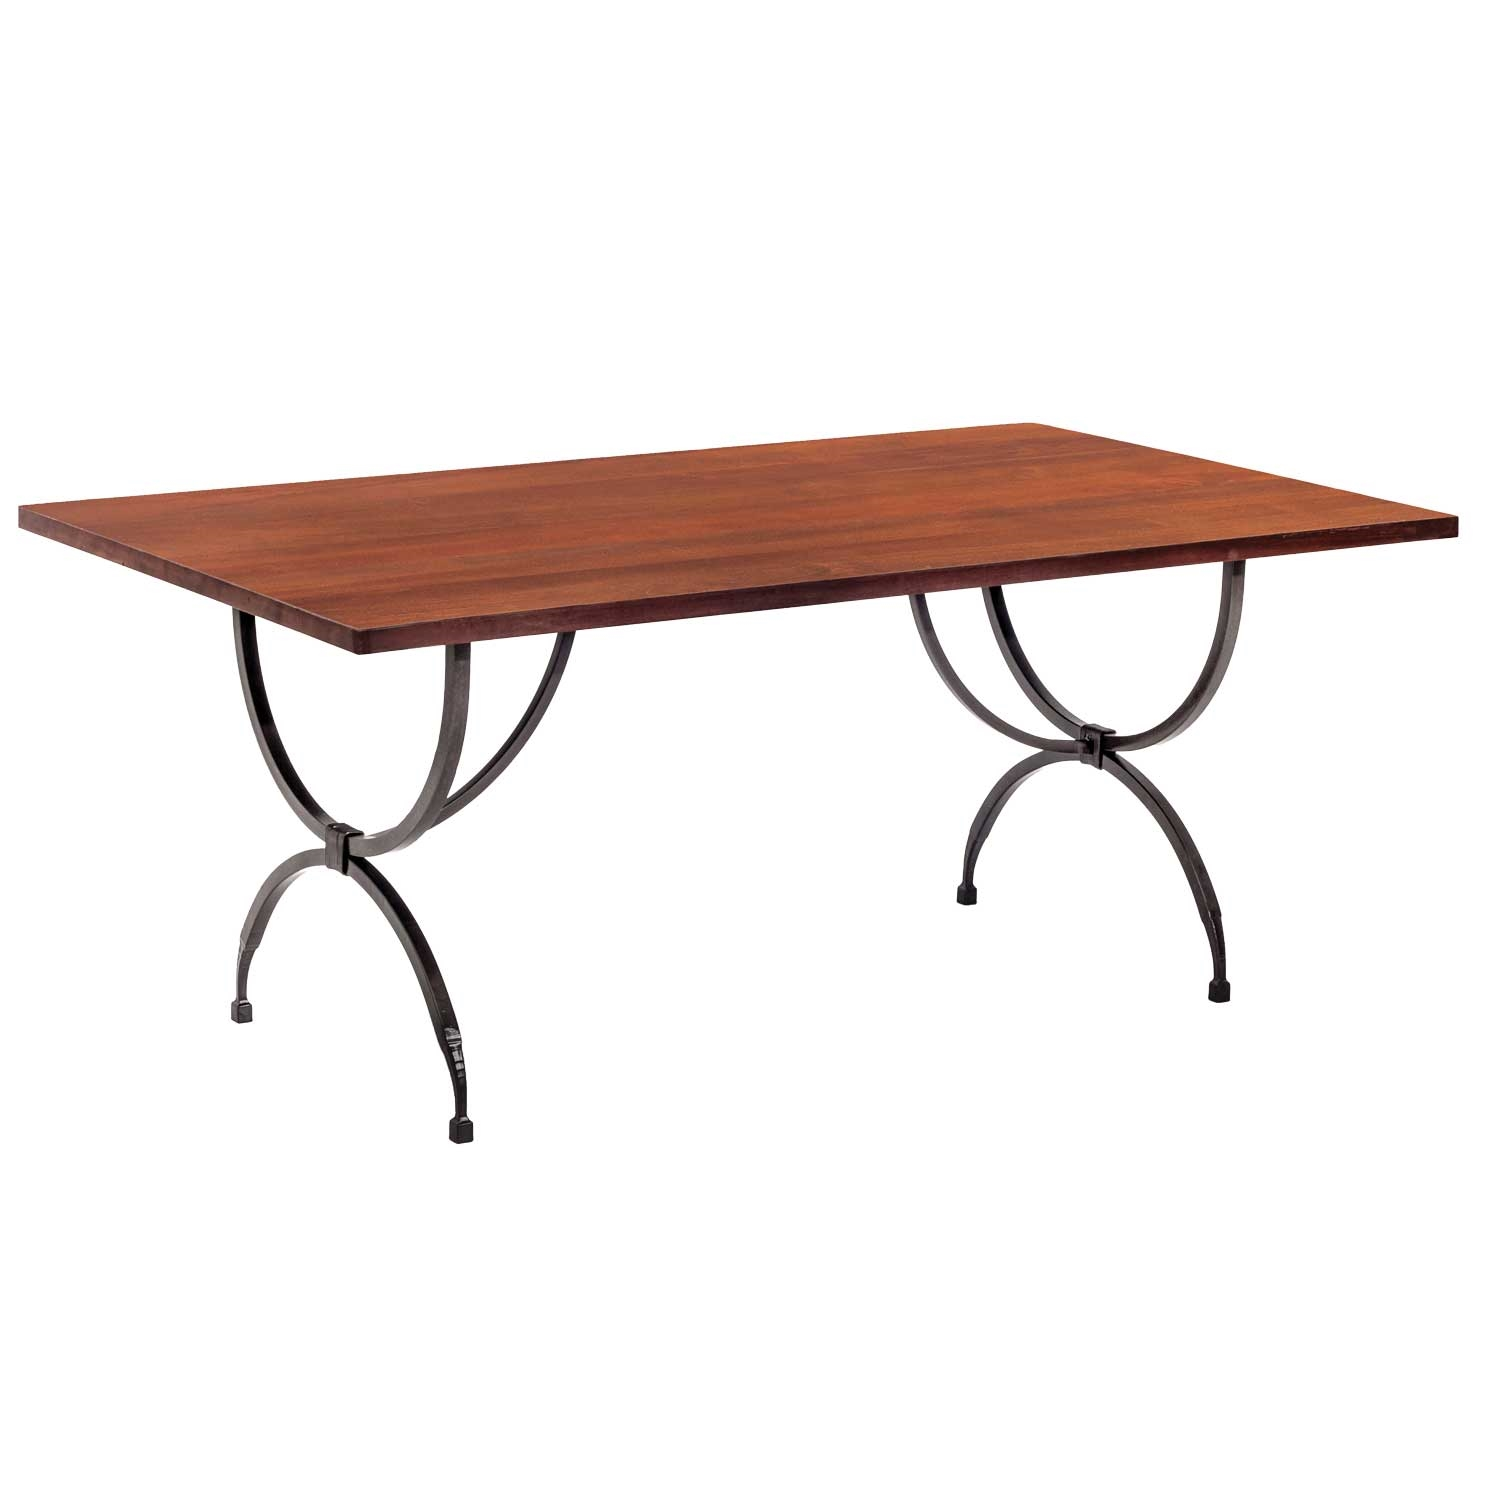 Wrought Iron Dining Table Base : TWI CF T756 2 from hwiki.us size 1500 x 1500 jpeg 154kB